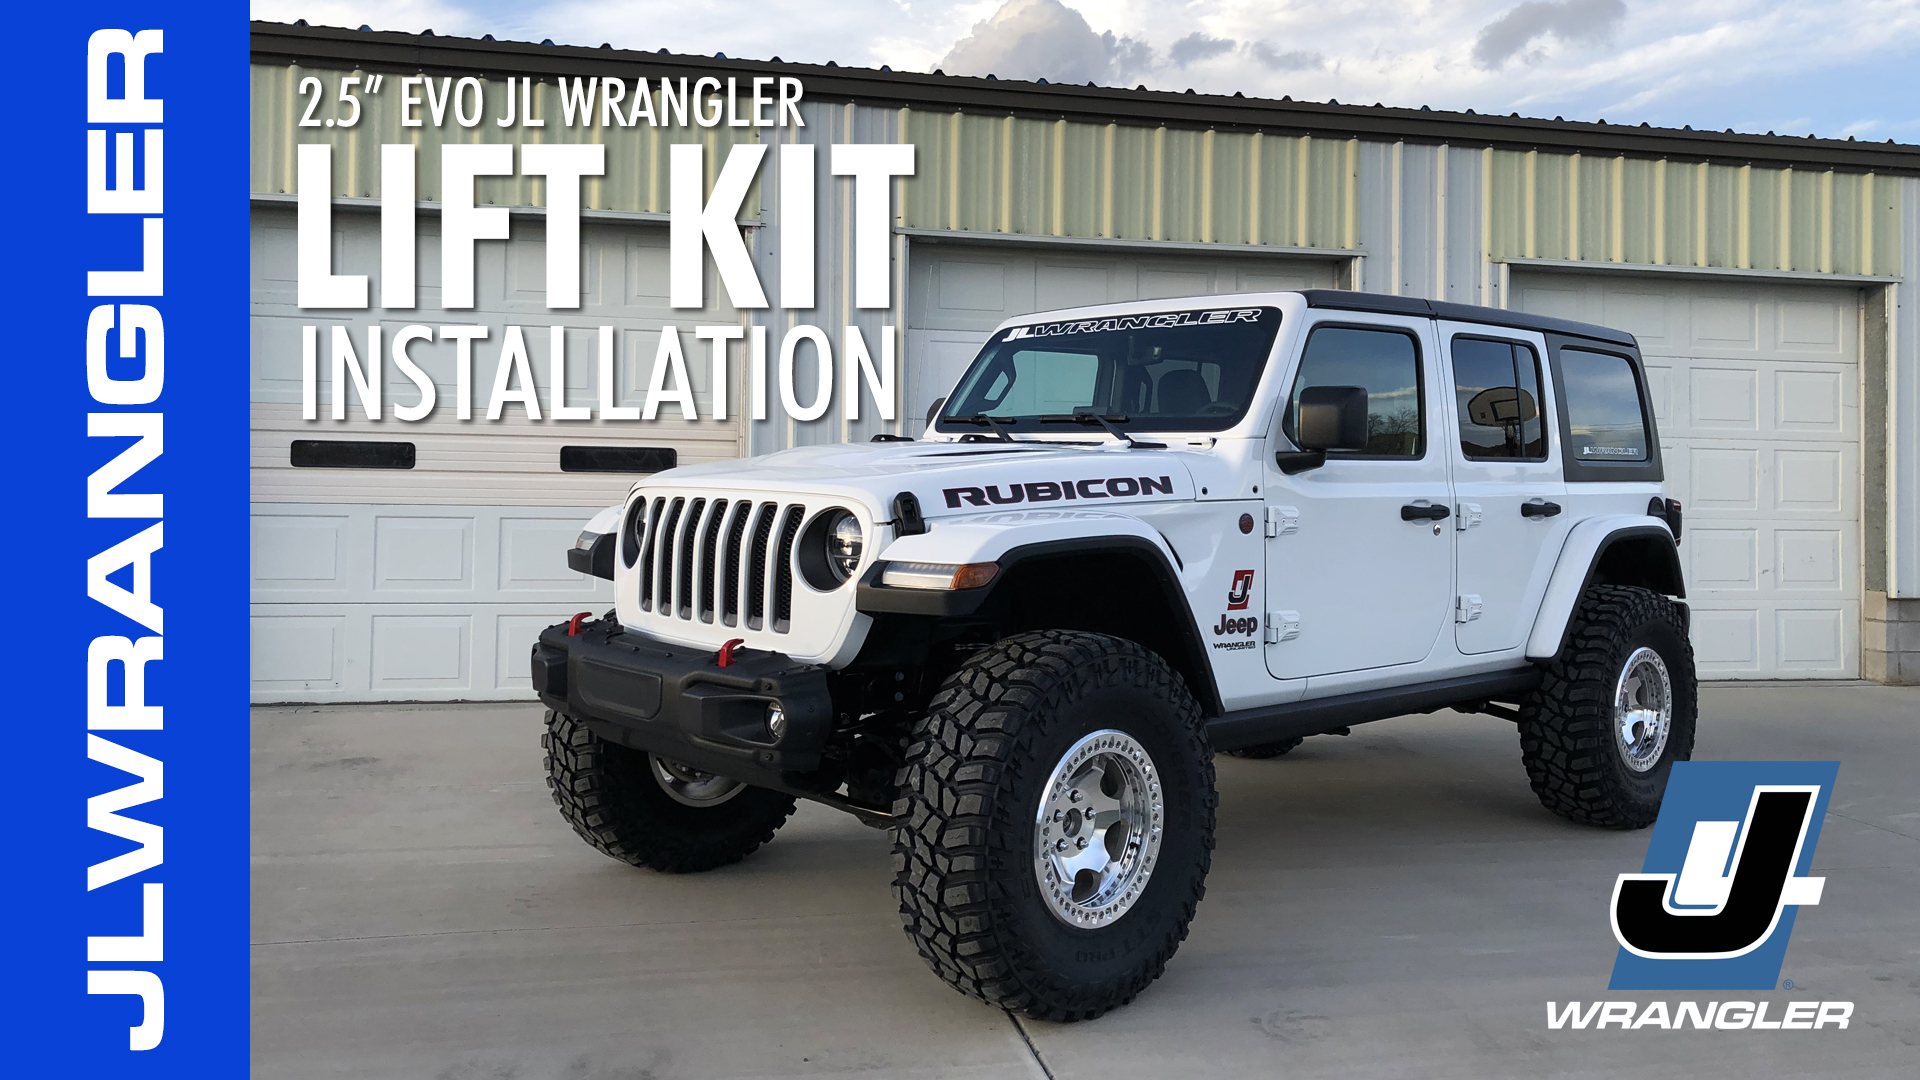 coil shocks w jk kit with maxtrac lift wrangler jeep kits dsc